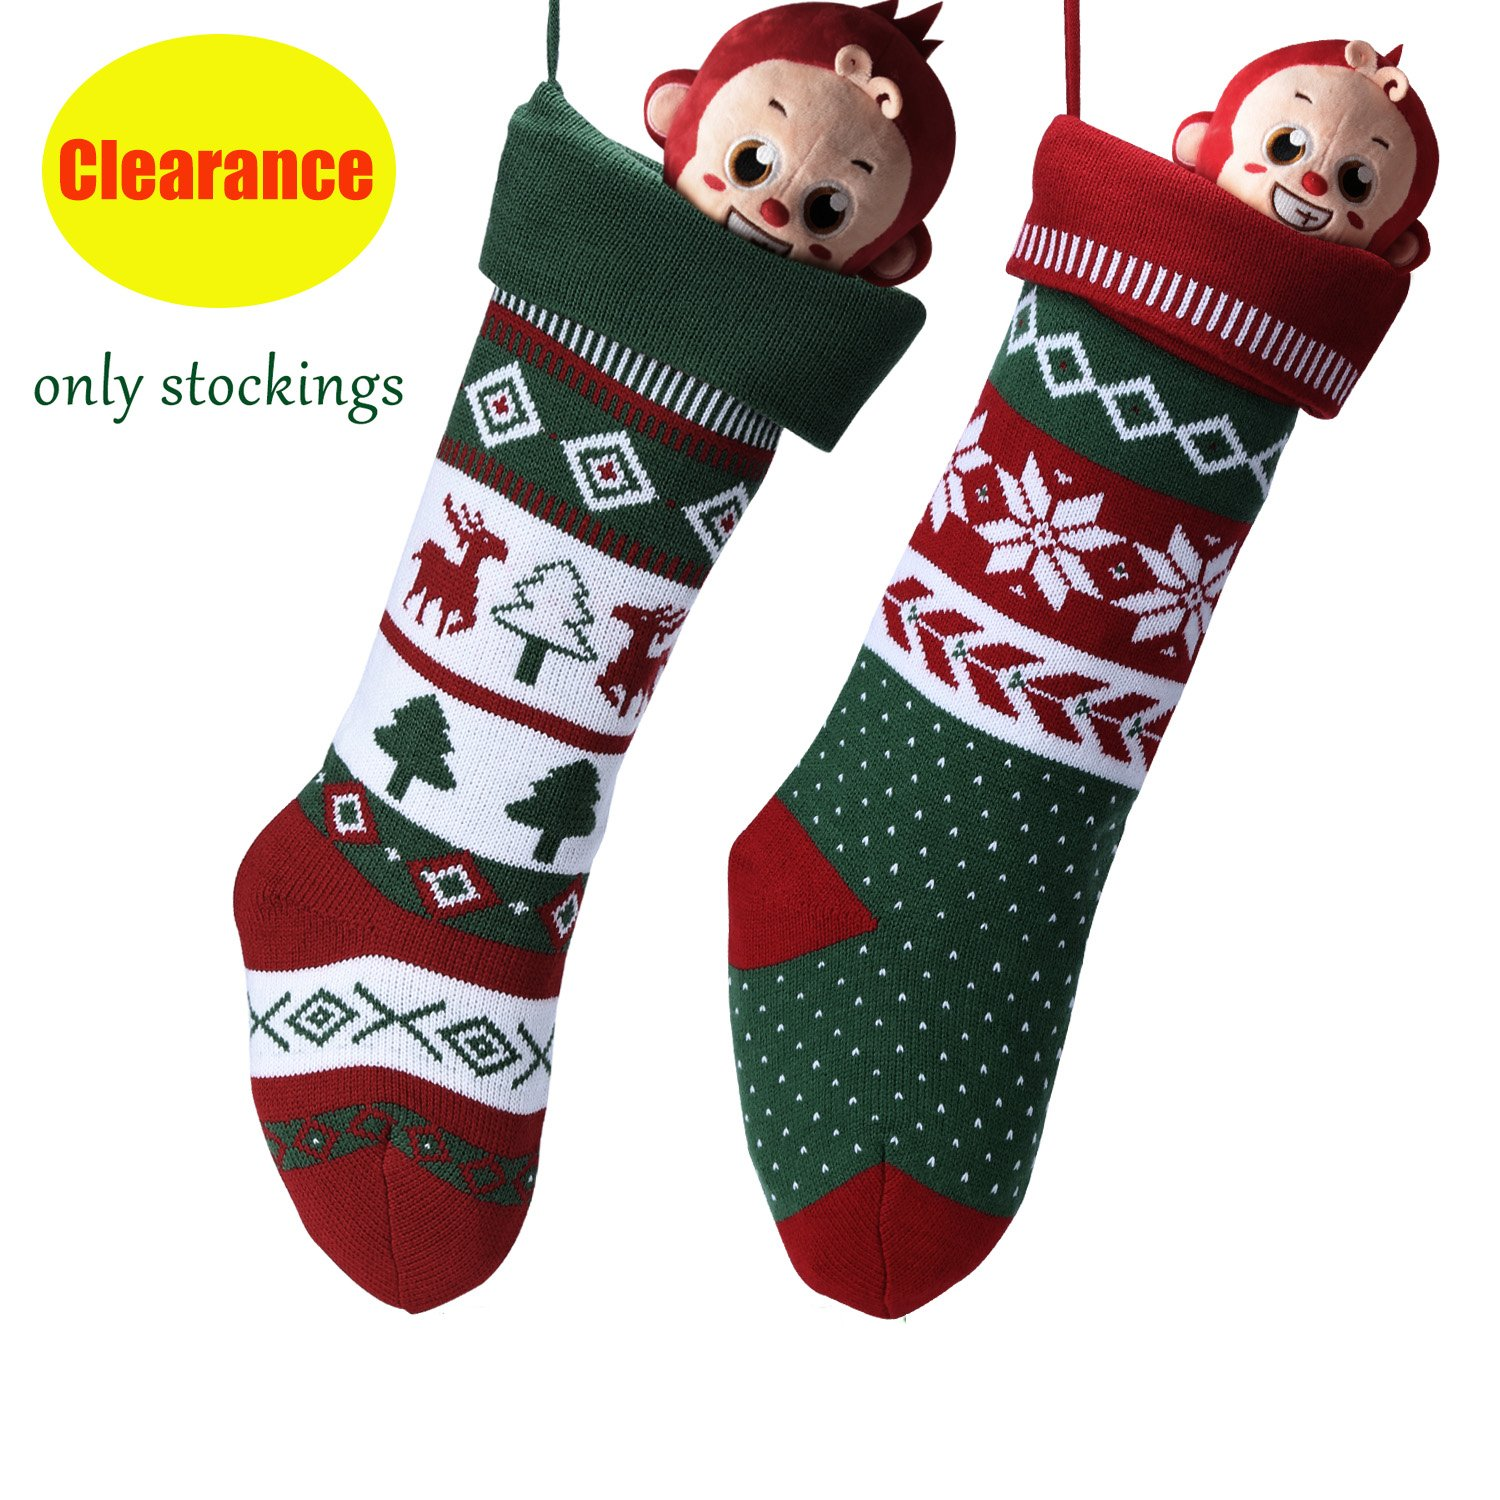 Knit Christmas Stockings for Family 22'' x 7'' Sets of 2 – Red/White/Green Snowflake knitted Hanging Bags - Holiday Gift - Decor,Decorations Christmas Tree,Mantel